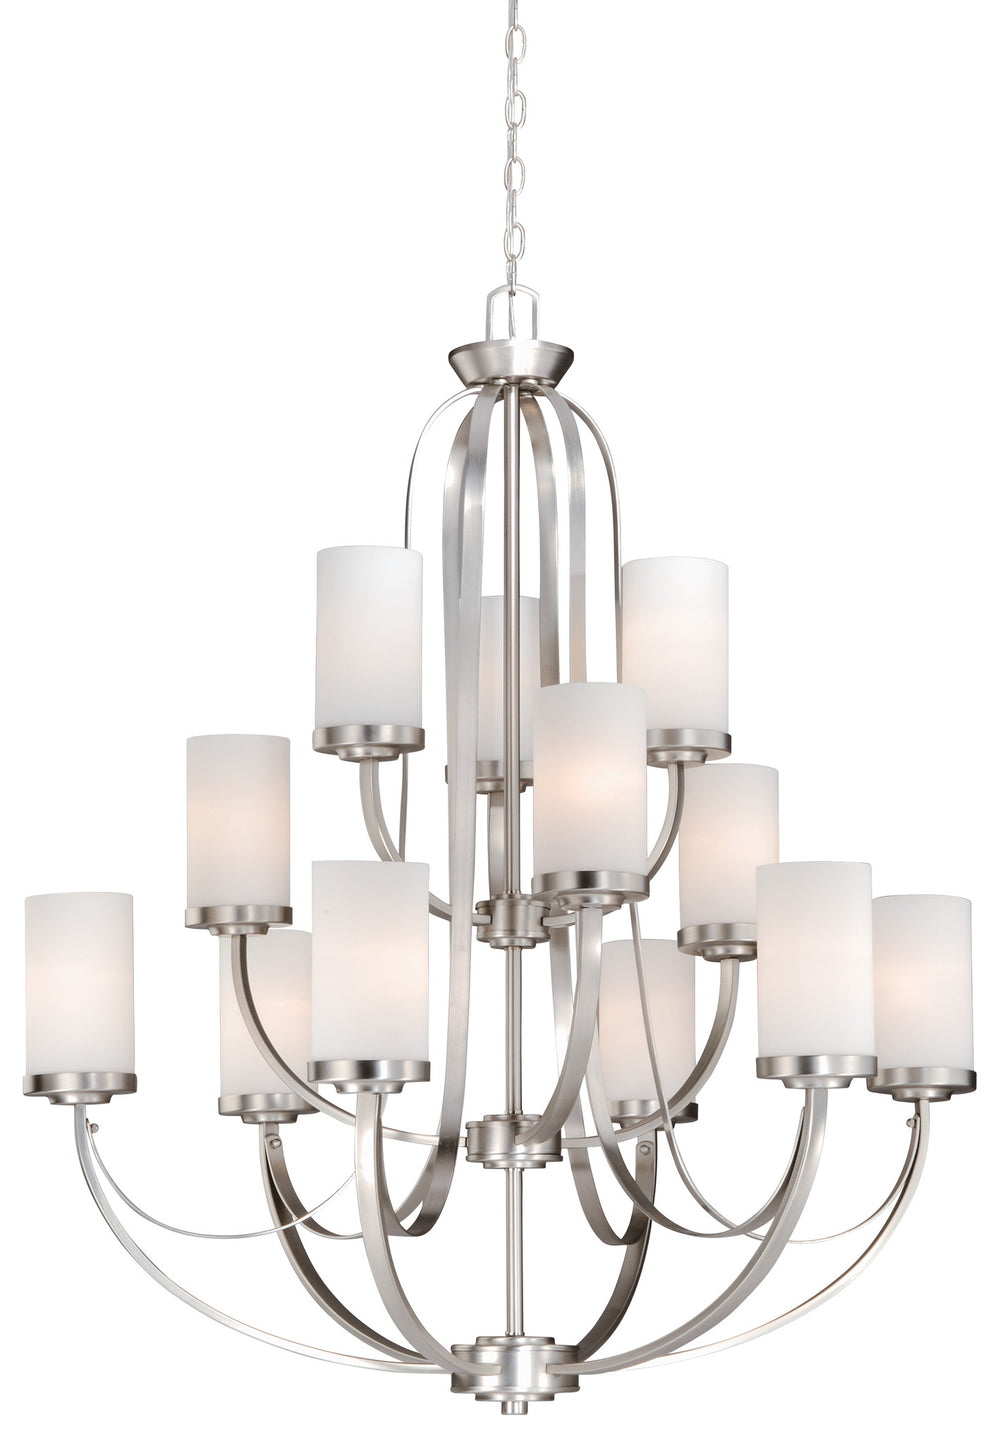 Buy OX-CHU012BN Vaxcel Oxford 12L Chandelier Brushed Nickel from LightingOriginals.ca